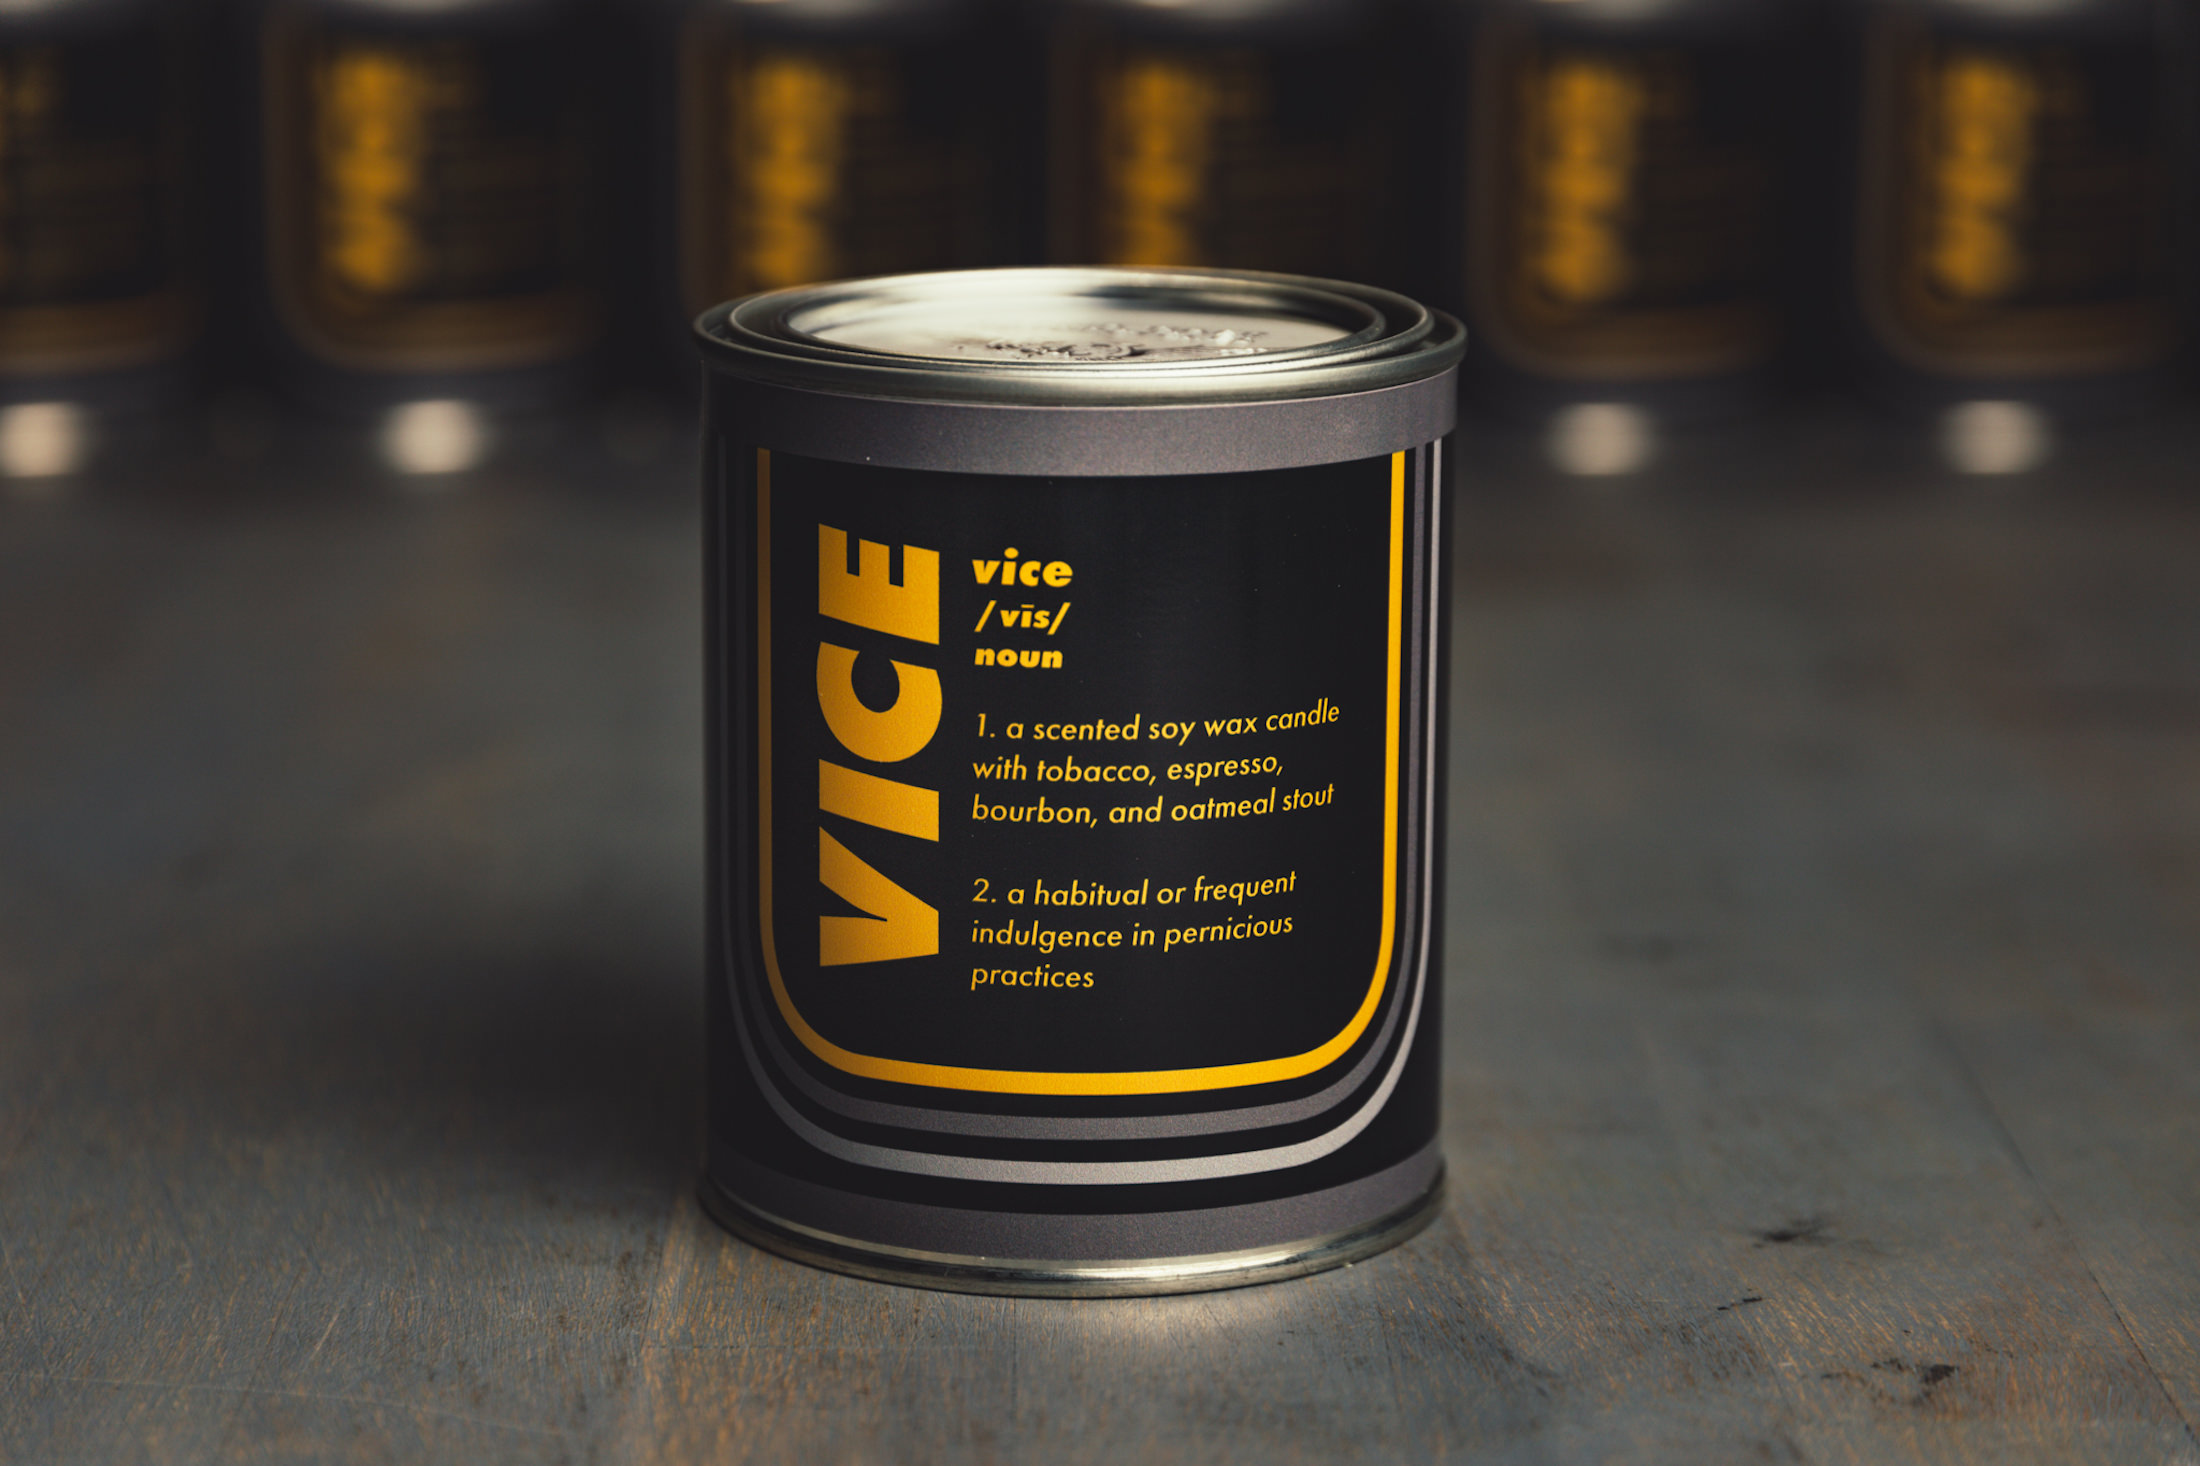 Vice Candle - A Tobacco, Bourbon, Espresso, and Oatmeal Stout Scented Candle 3